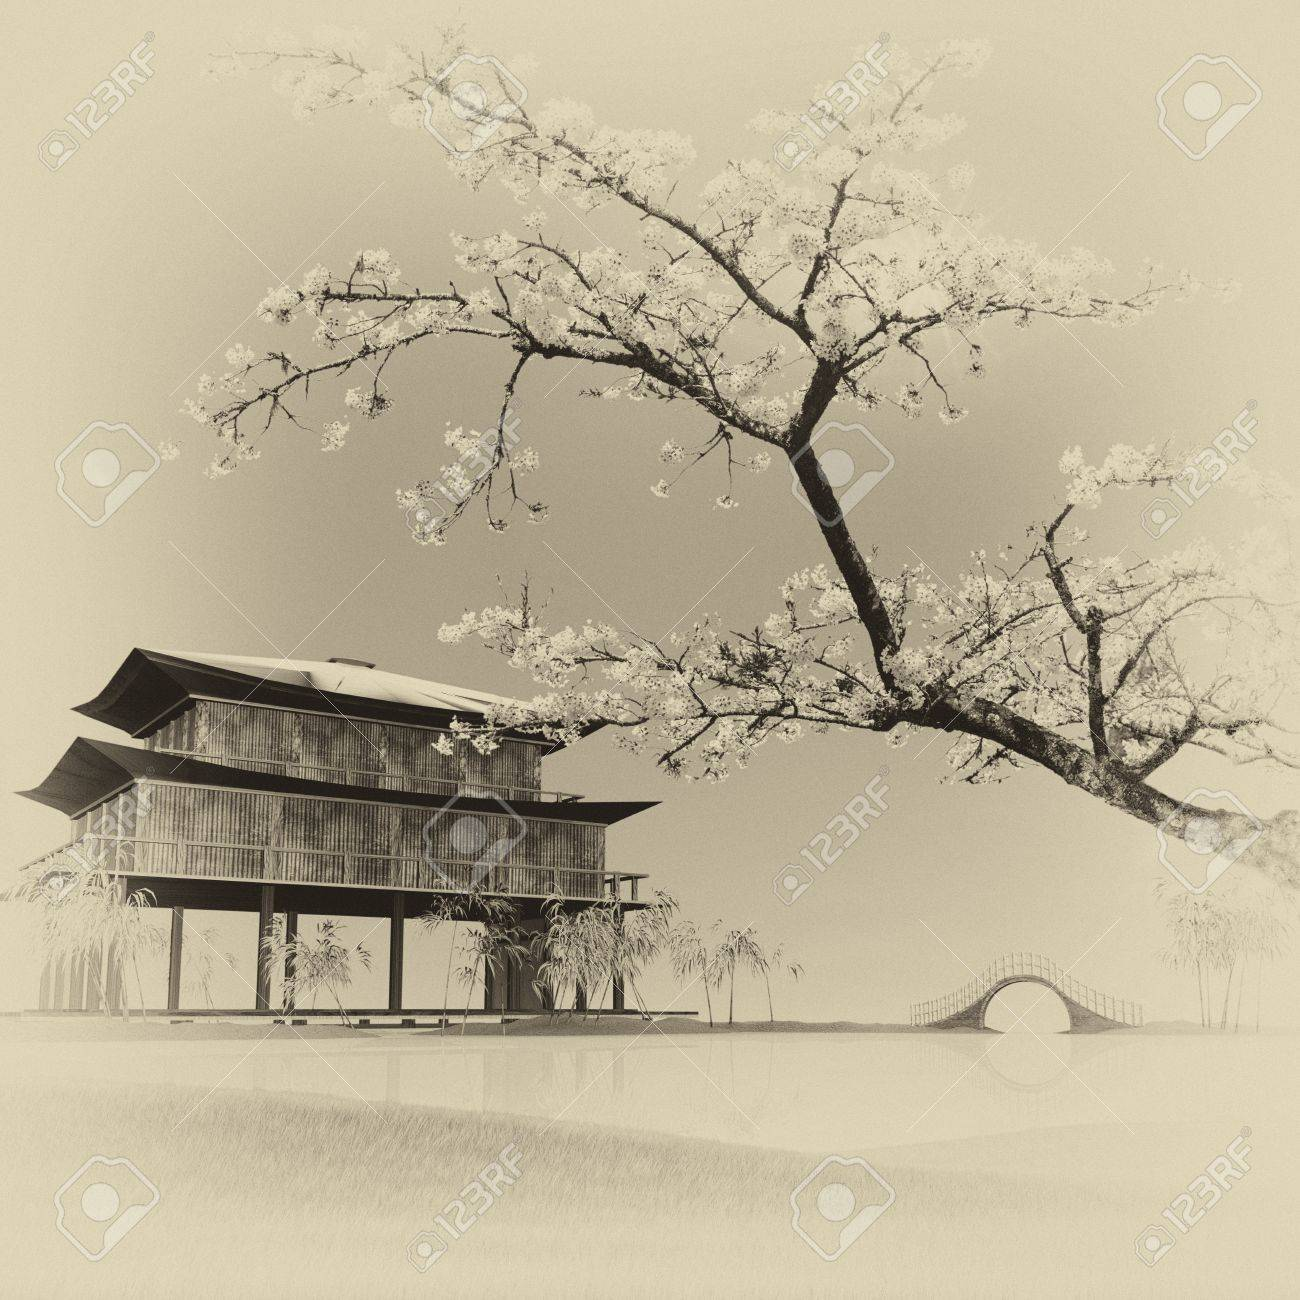 Painting style of china landscape for adv or others purpose use Stock Photo - 20287226